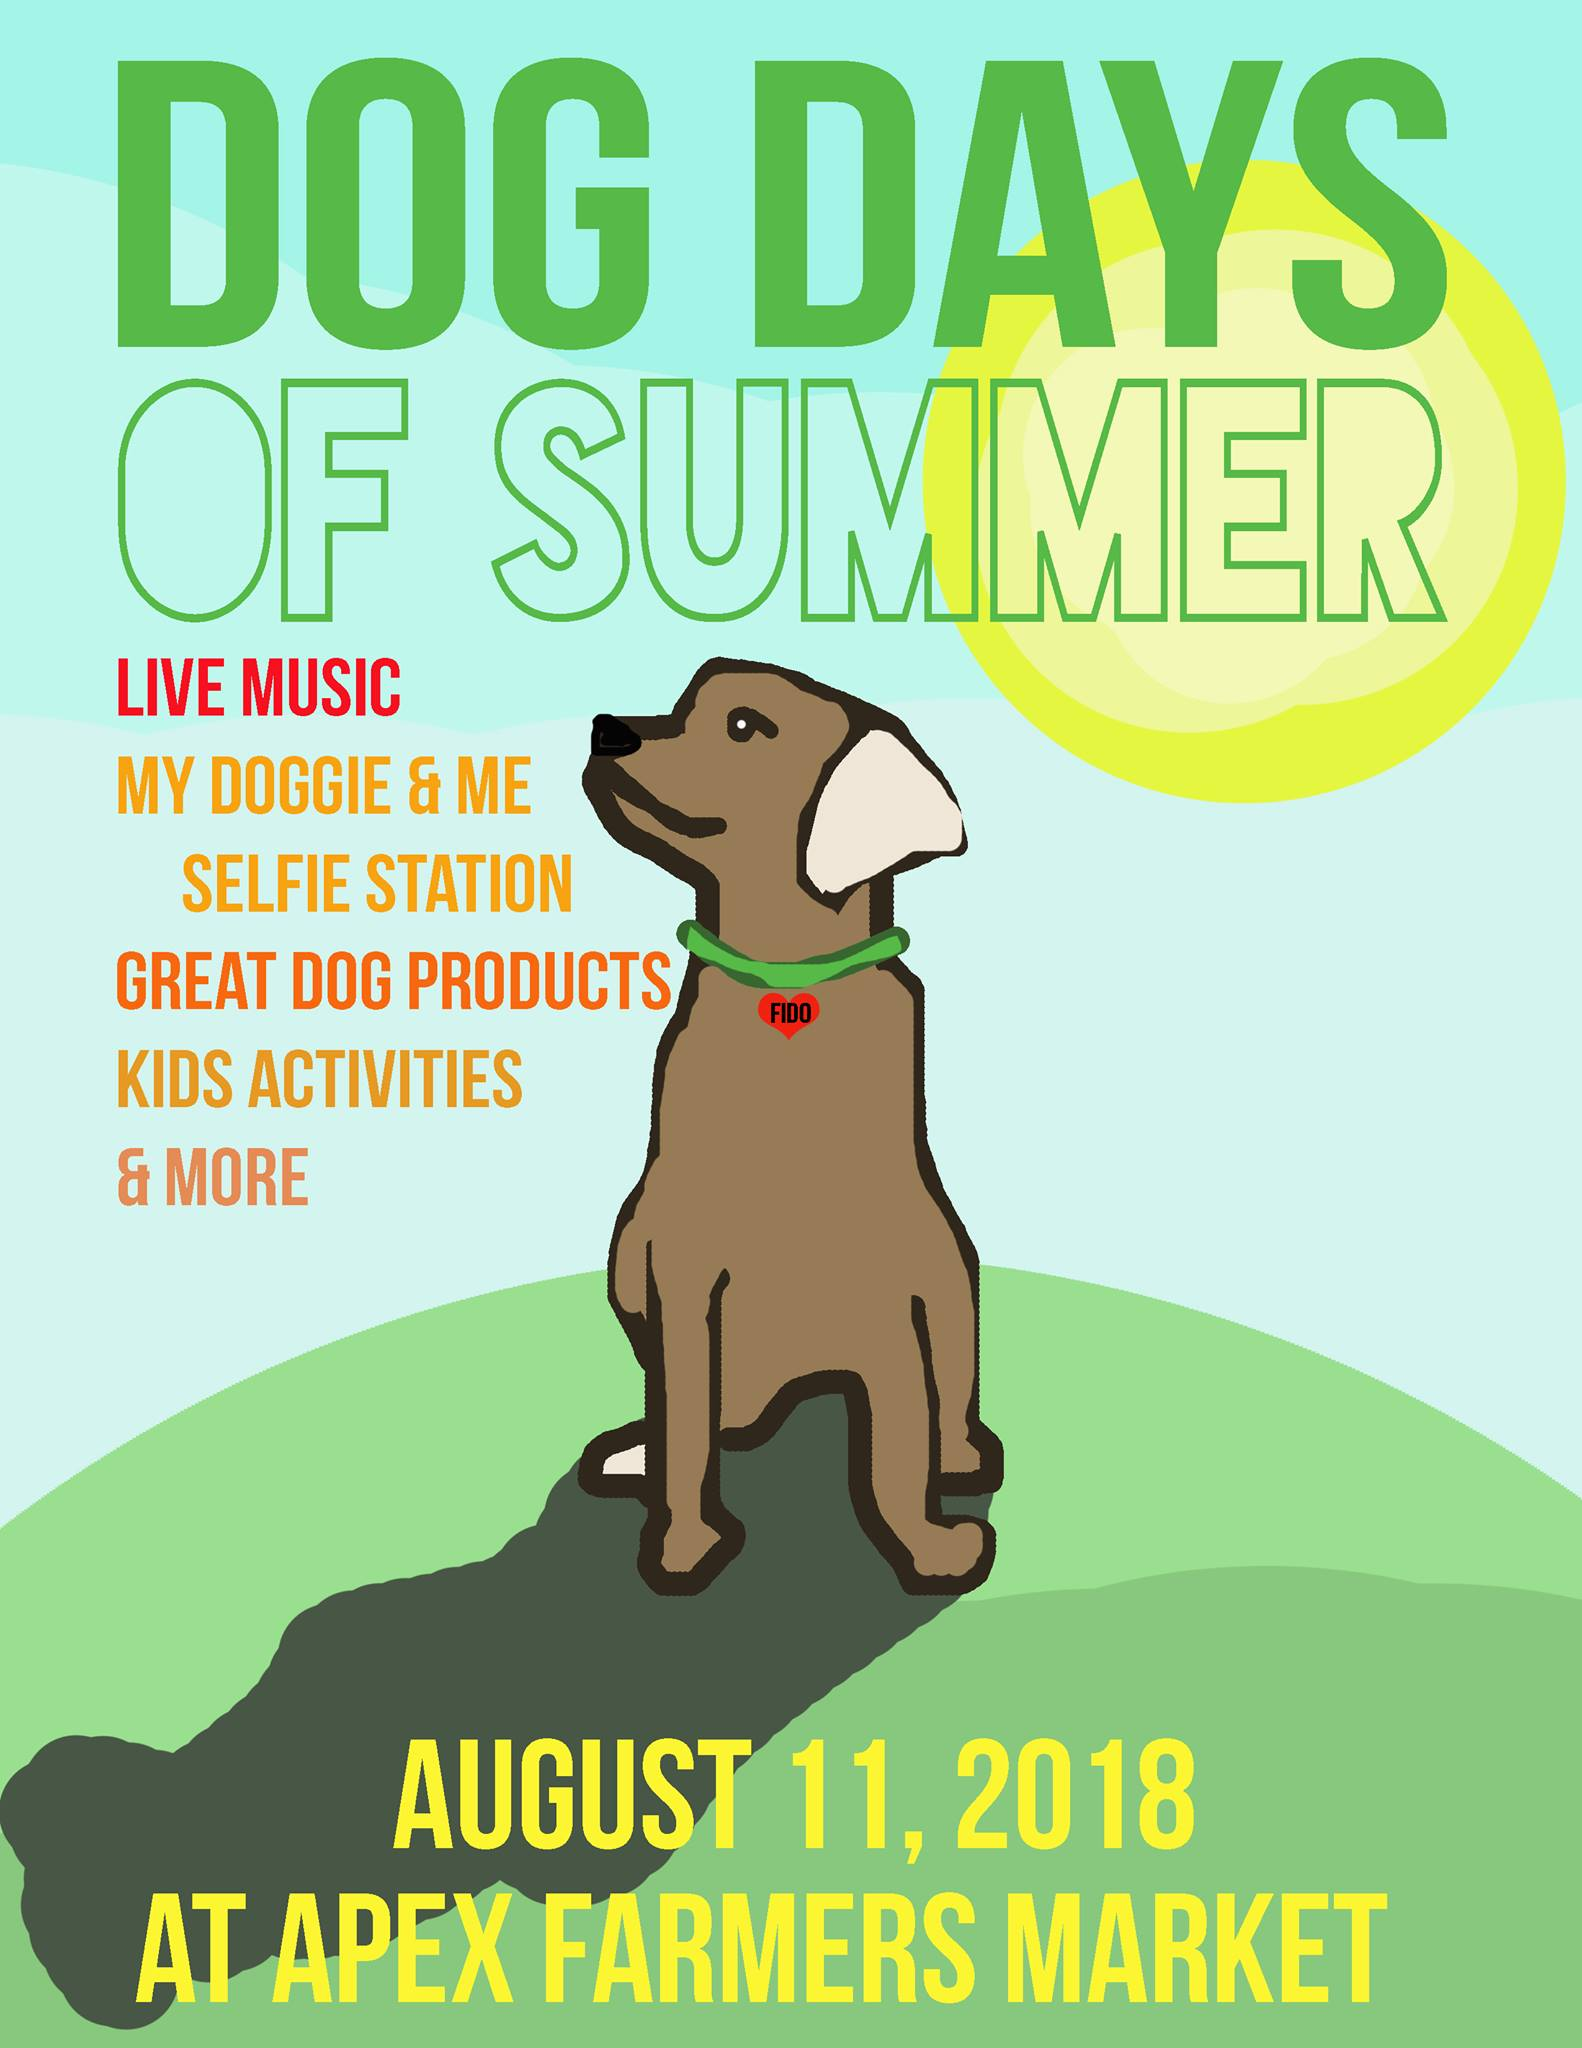 The Dog Days of Summer Festival at the Apex Farmers Market is this weekend! Live music, doggie selfie station, dog treats, fun kids' activities and more! Come out to downtown Apex for a great family friendly event from 8:30am to 1230pm.